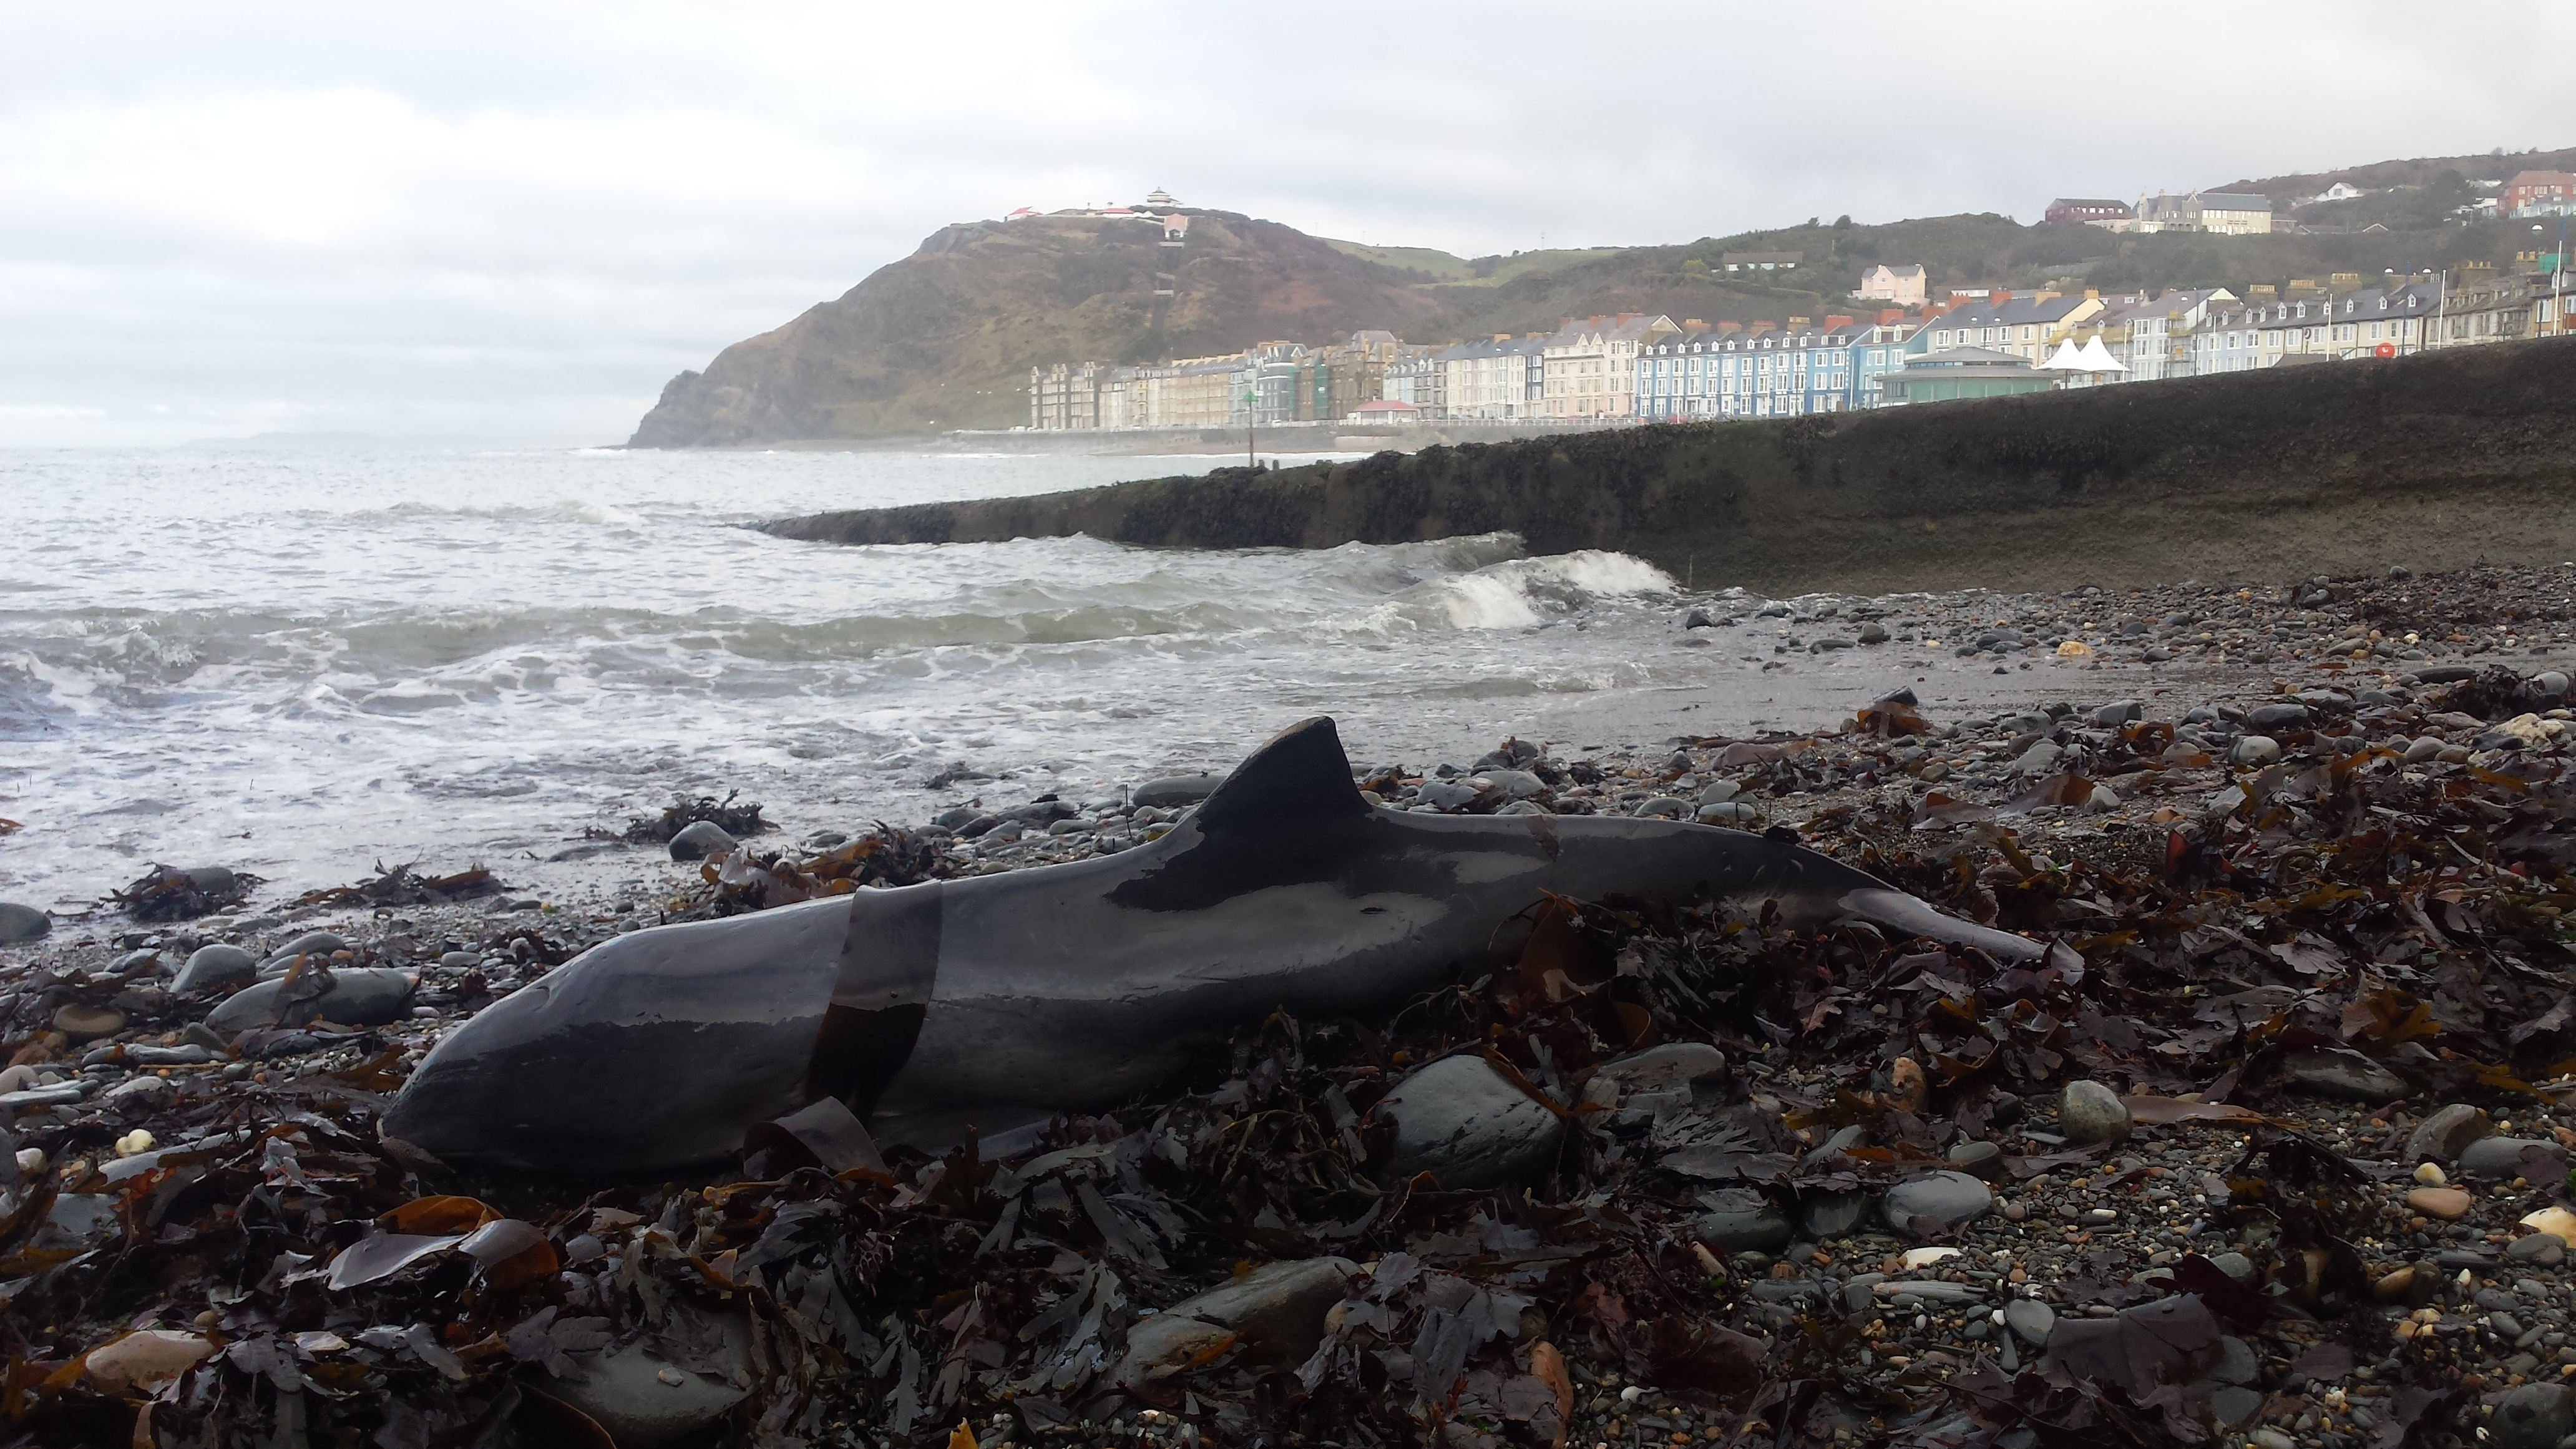 Stranded porpoise in Wales